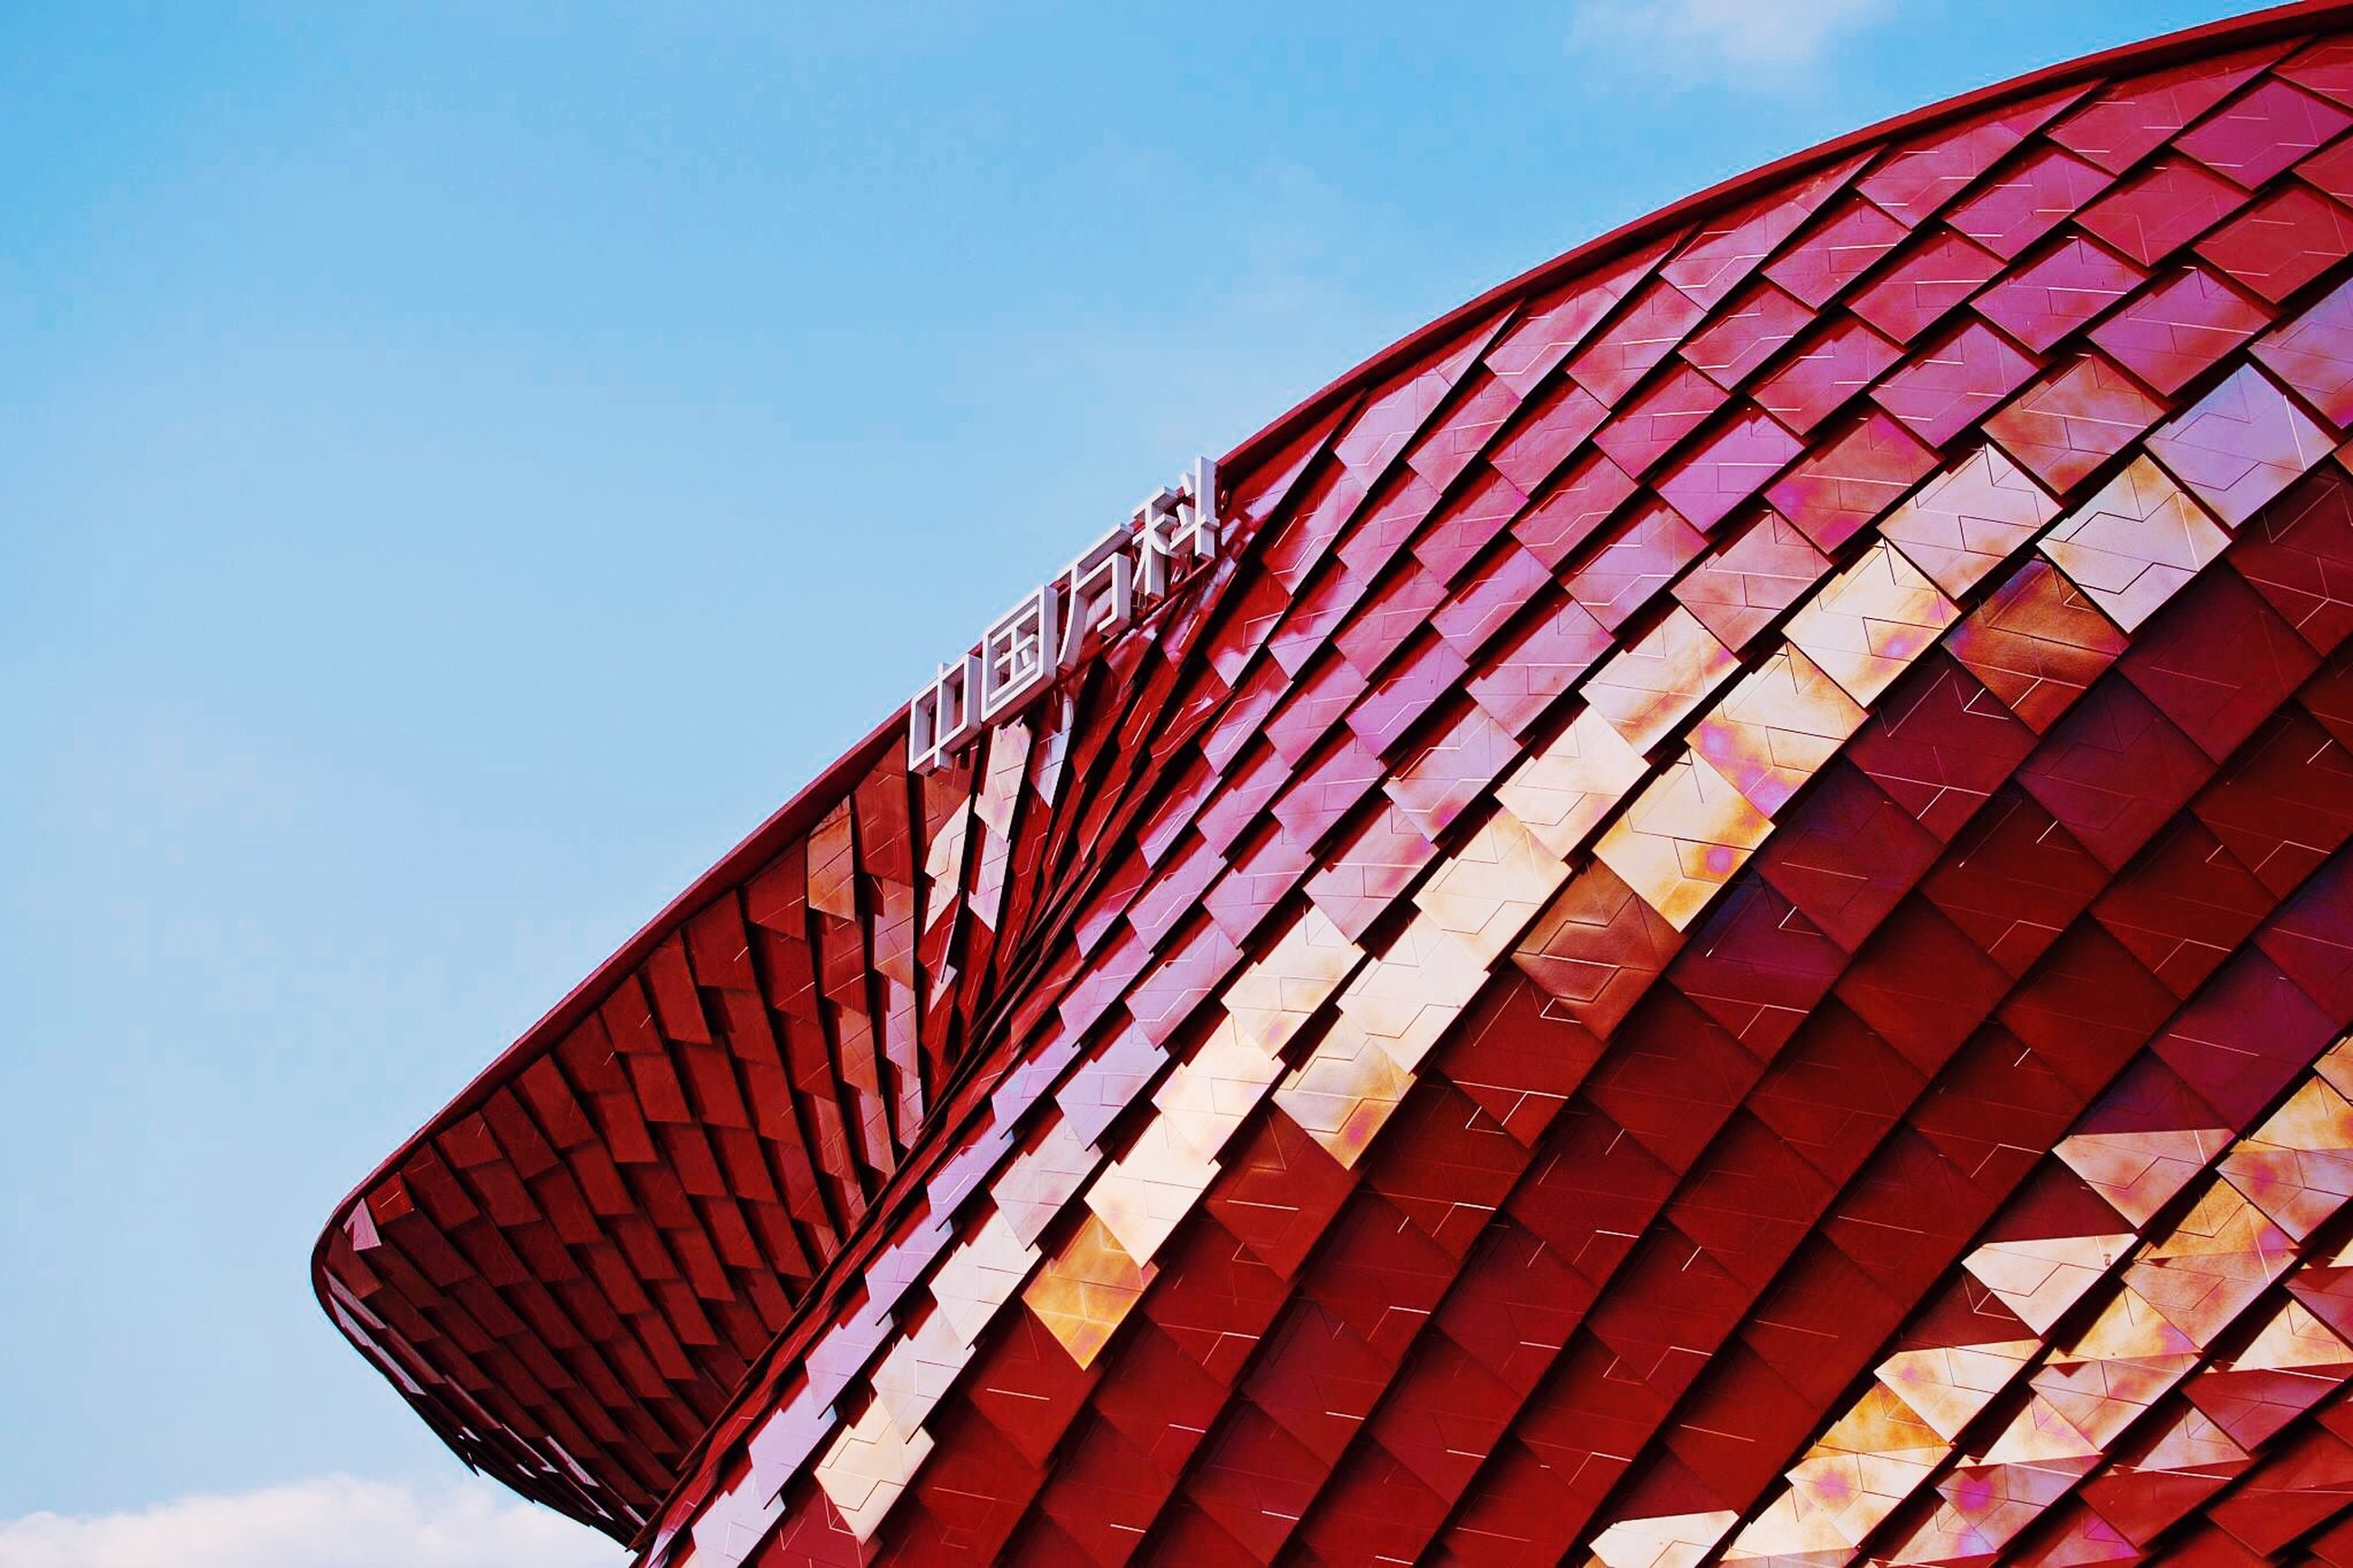 architecture, built structure, building exterior, low angle view, clear sky, red, sky, blue, outdoors, flag, day, city, modern, part of, high section, no people, pattern, national flag, patriotism, building